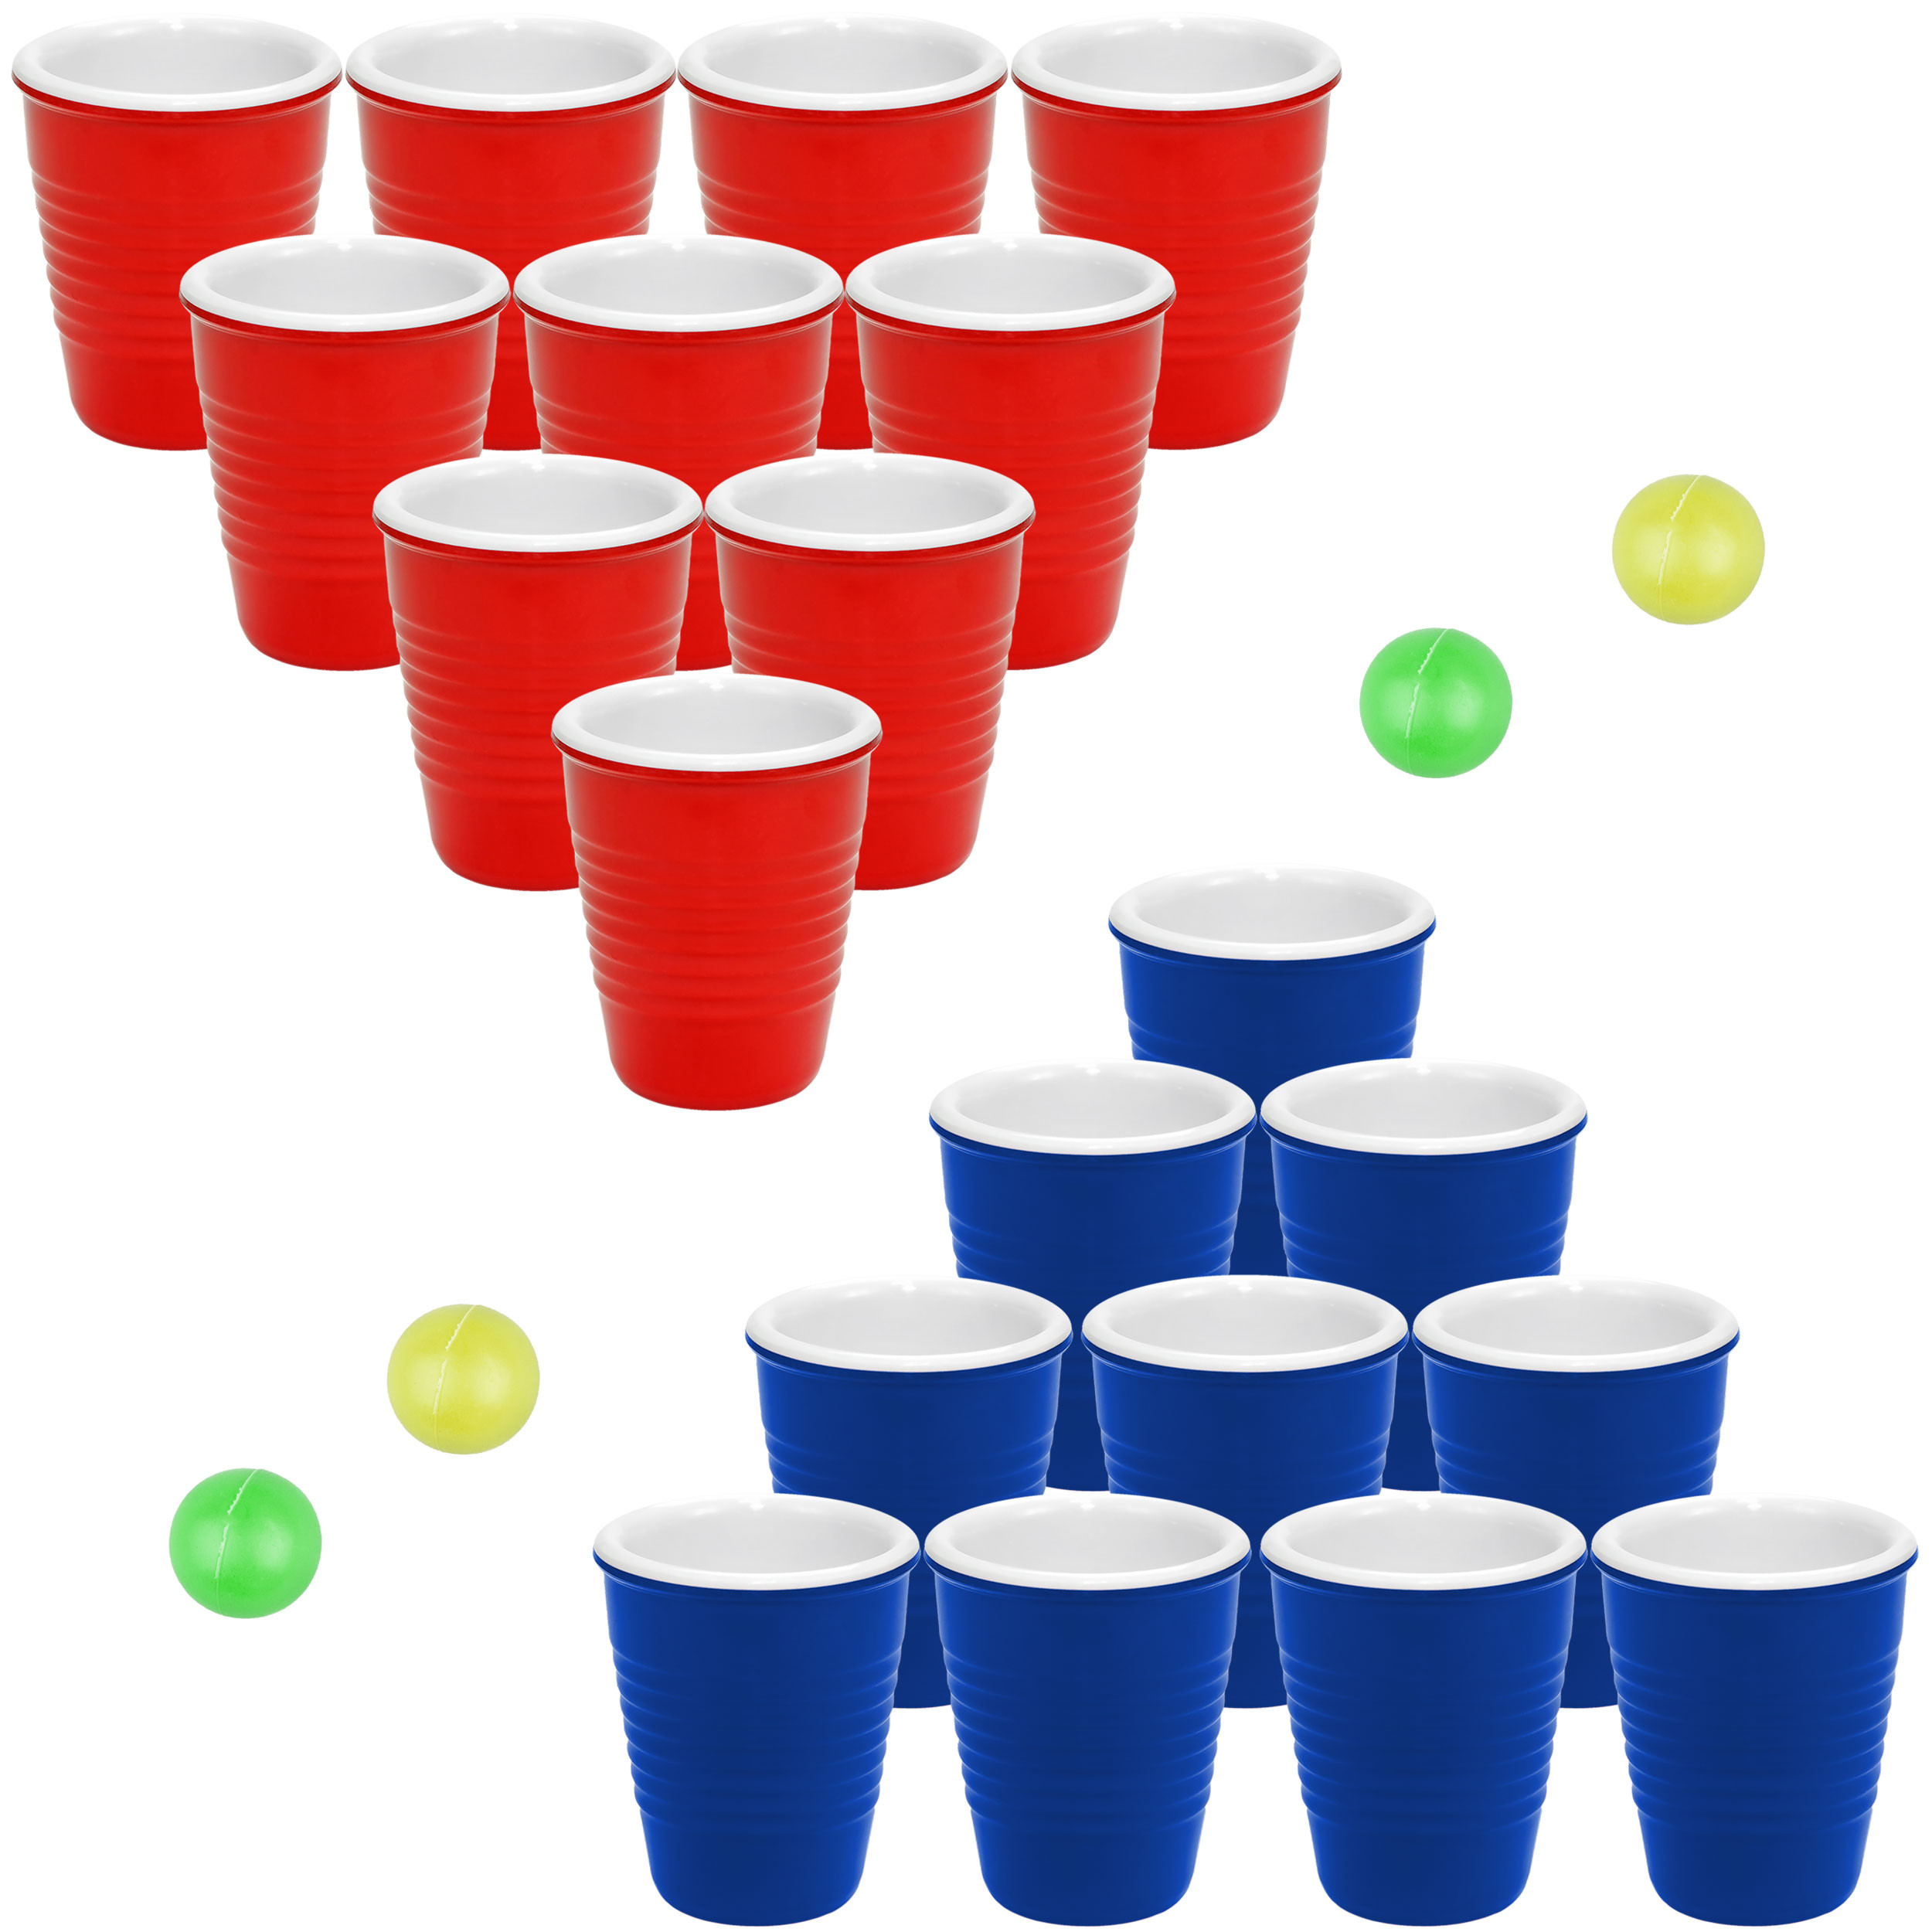 Pro Series Shot Pong Set - Fairly Odd Novelties - Drinking Game w/ 20 Hard Plastic Shot Glasses Gift